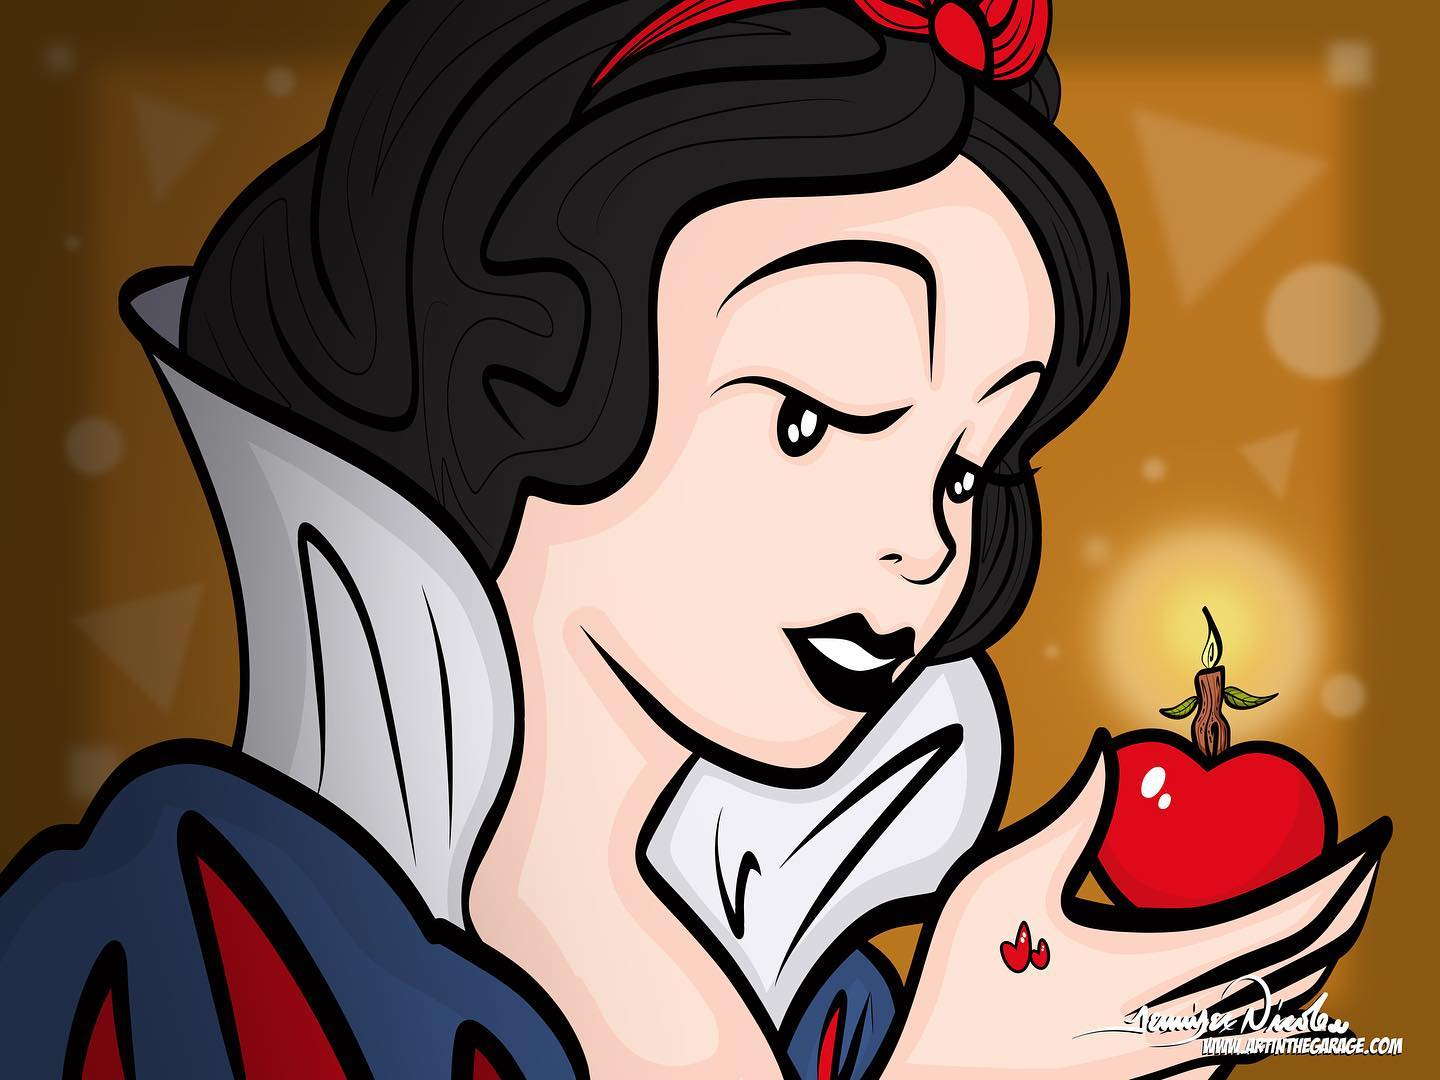 1-9-21 Happy Birthday Snow White